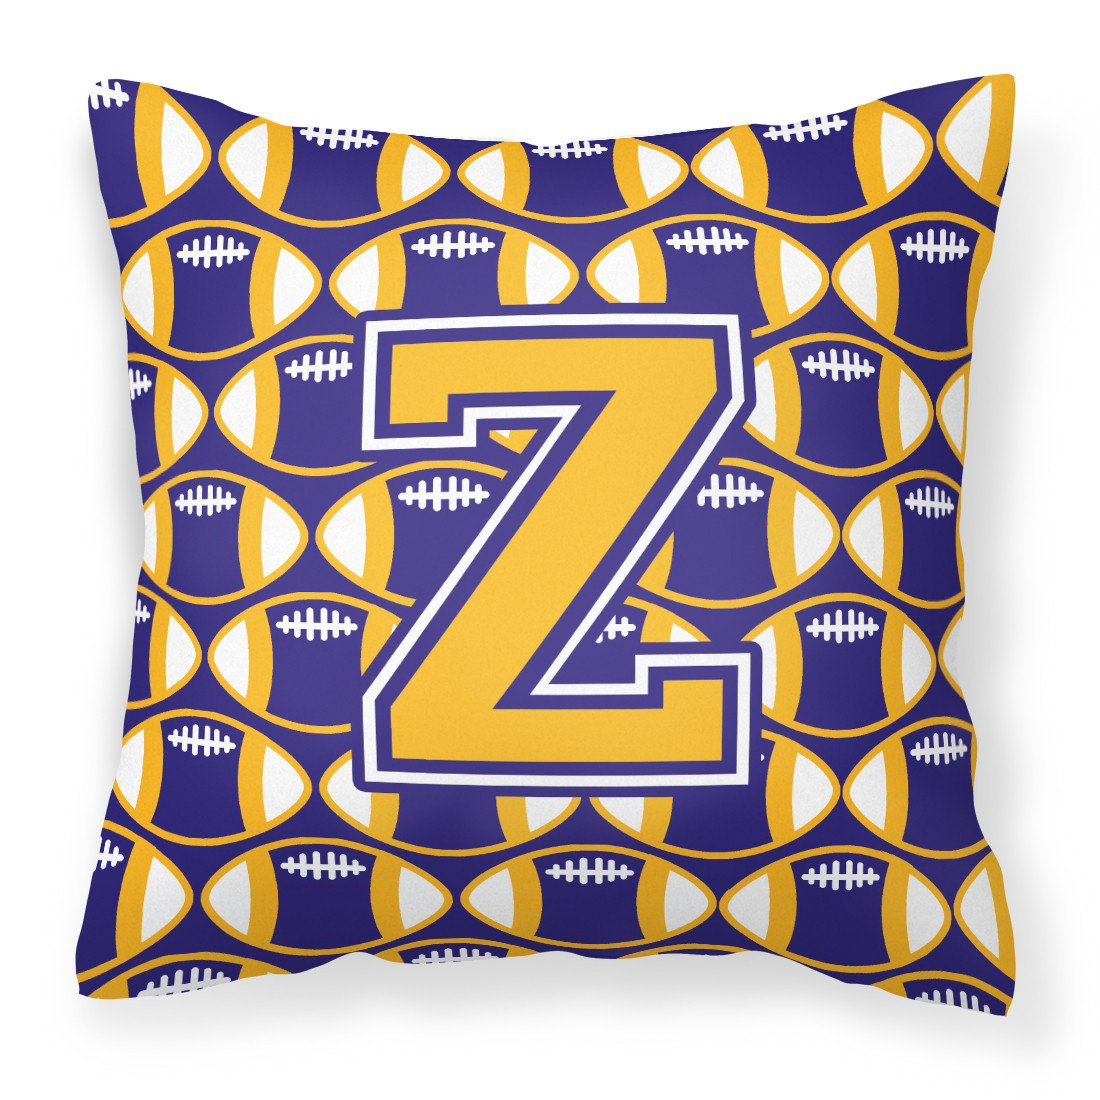 Letter Z Football Purple and Gold Fabric Decorative Pillow CJ1064-ZPW1414 by Caroline's Treasures